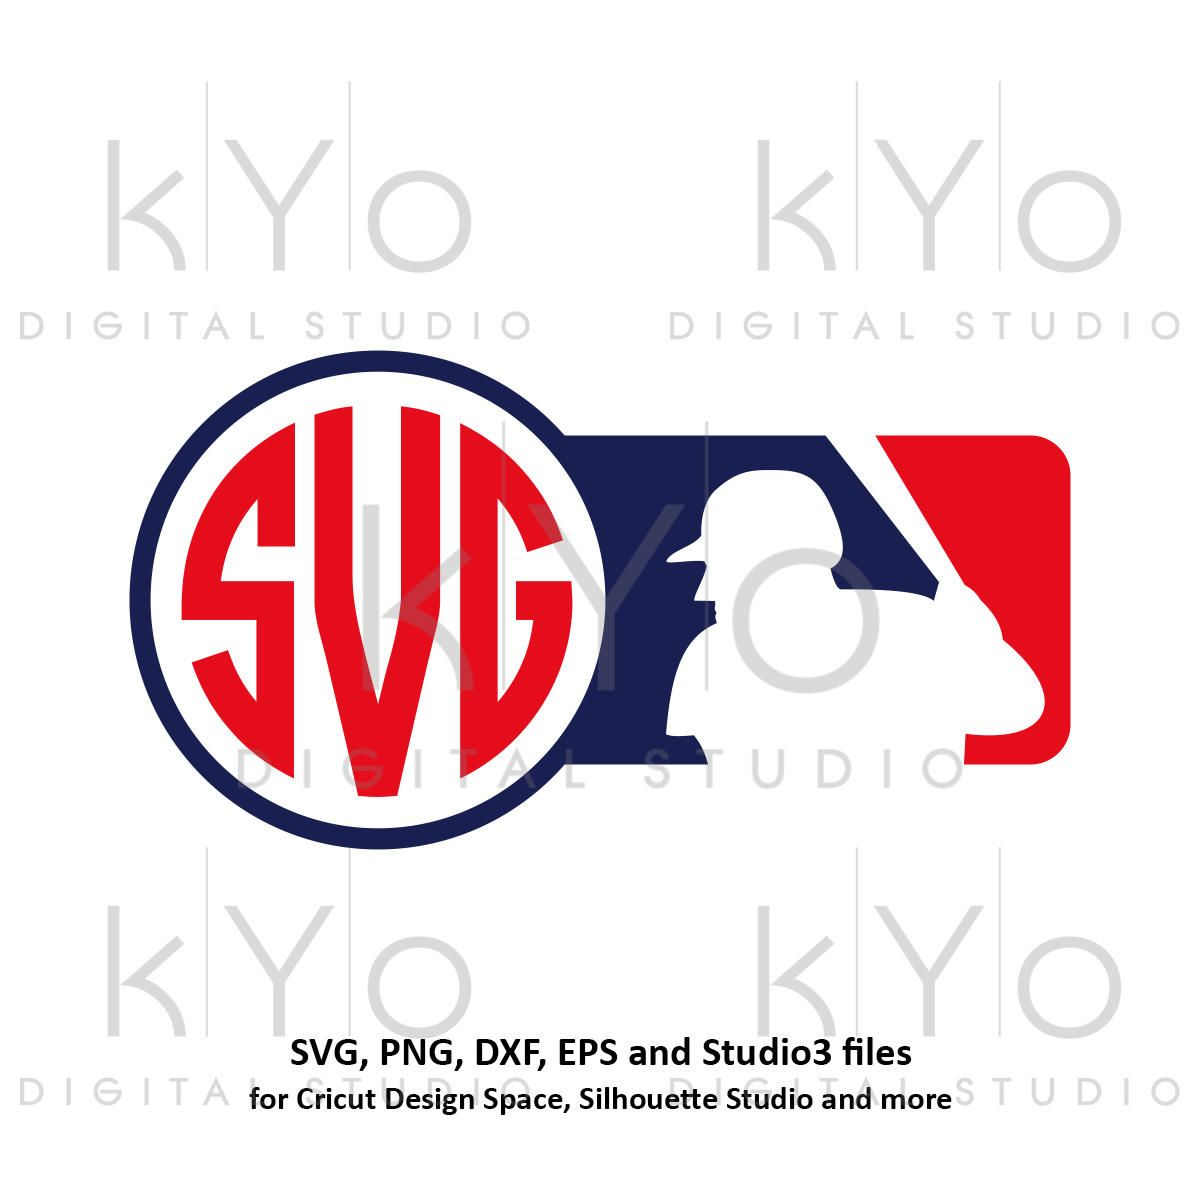 Baseball Svg Mlb Logo Inspired Monogram Frame Svg Baseball Monogram Svg Stitches Svg Baseball Logo Svg Files For Cricut Silhouette Dxf Files Baseball Svg Baseball Monogram Monogram Frame